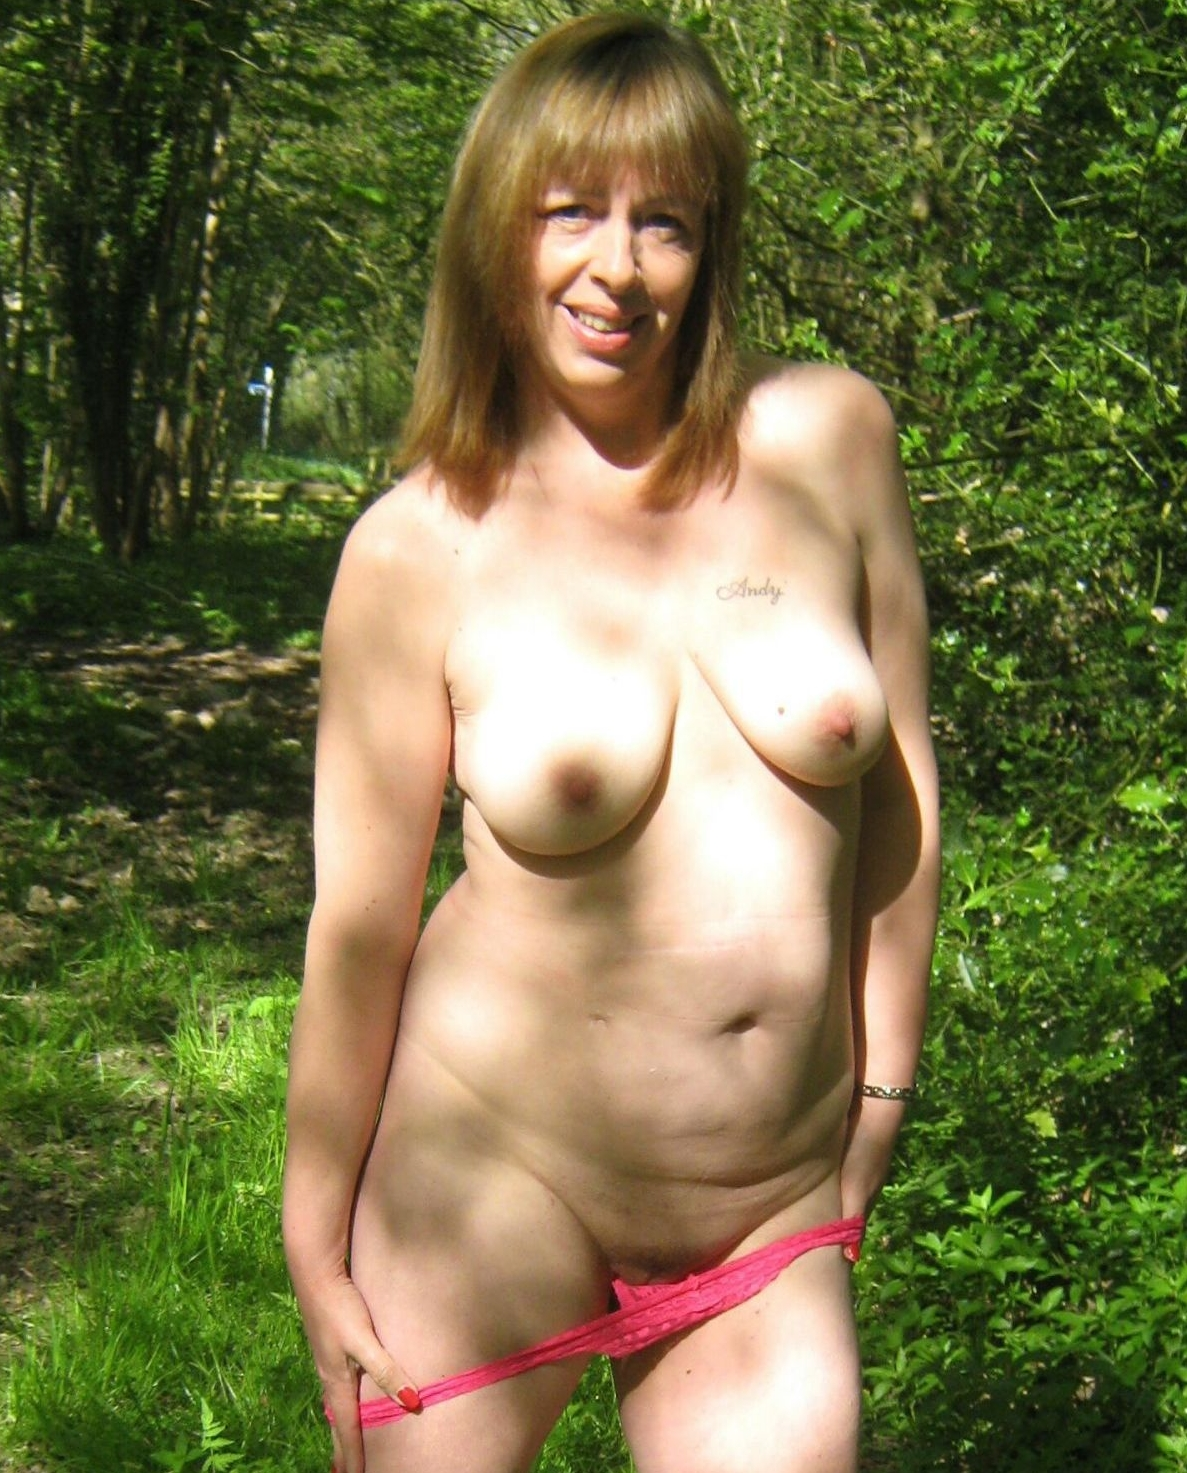 Old slut taking off her knickers. real nudity public nudity mature howife